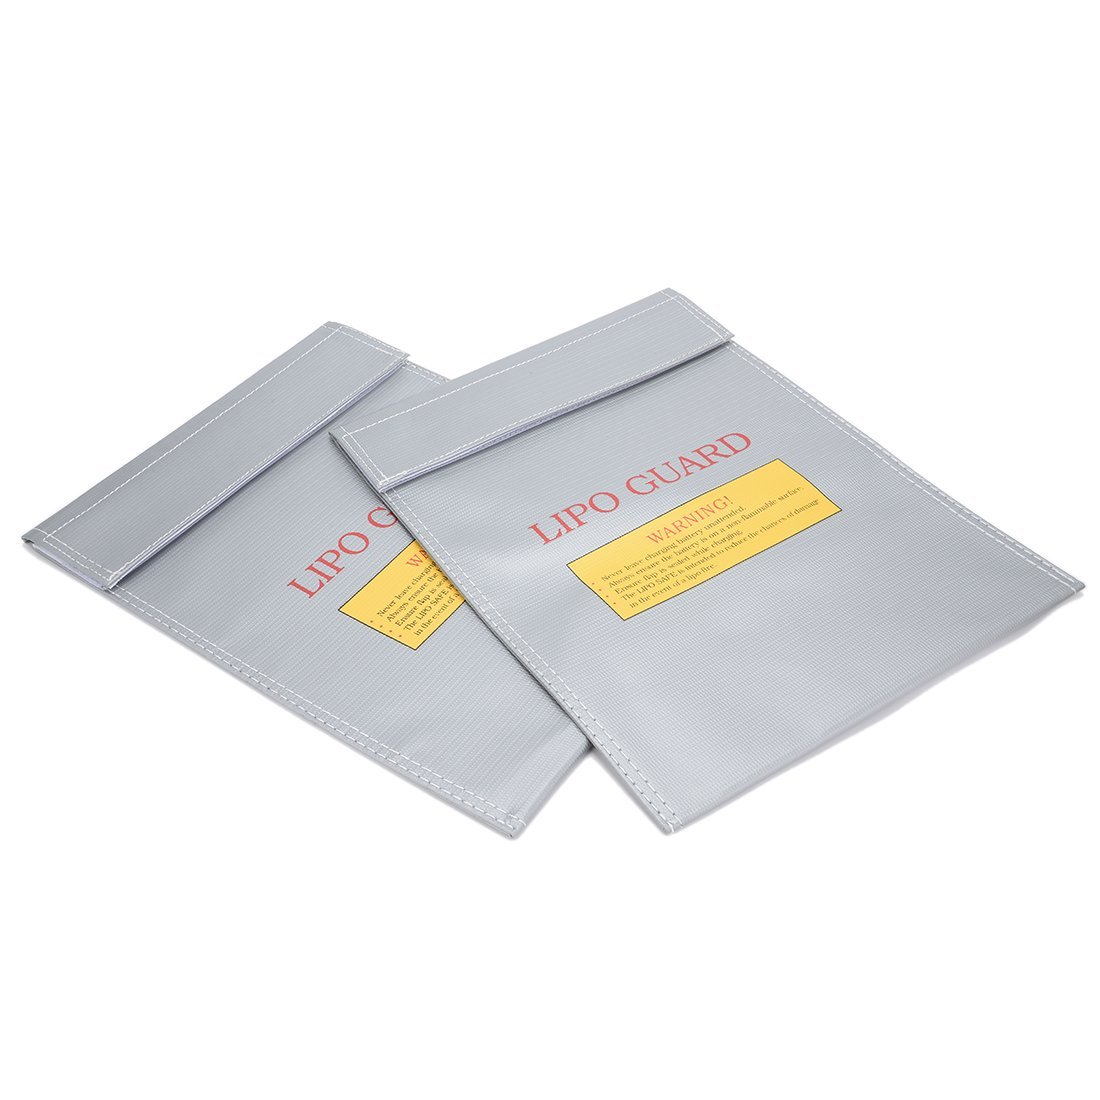 uxcell 2pcs Fireproof RC Lipo Battery Storage Charging Safe Bag Pouch Sack Lipo Battery Guard Silver 230mmx300mm Large